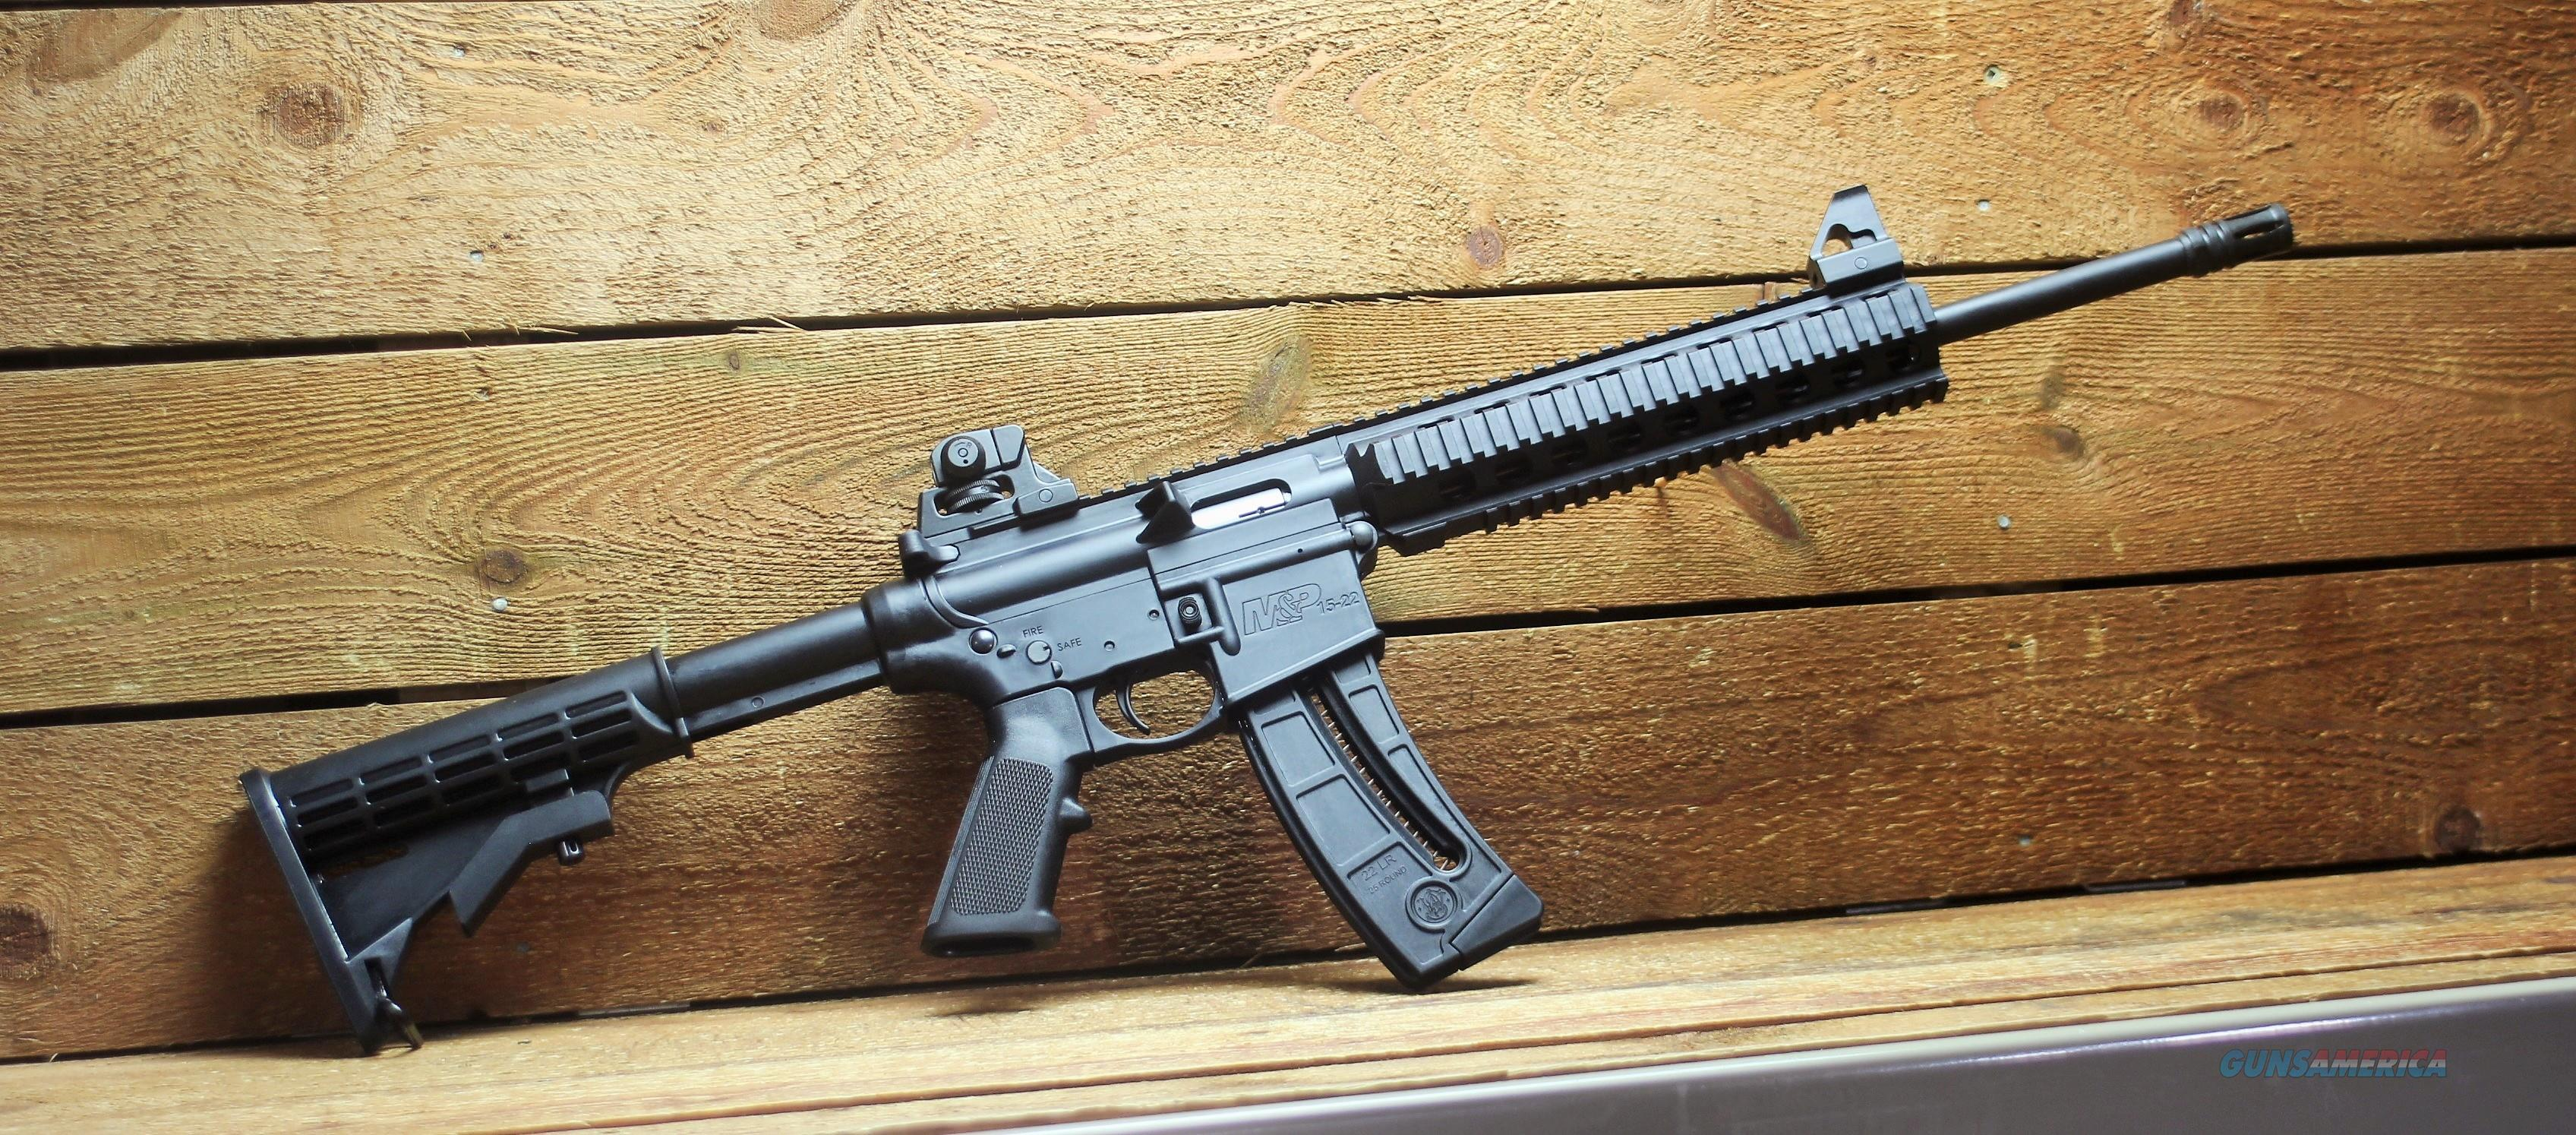 "S&W M&P 15-22 - A1 .22 25rd mag 811033  ""EASY PAY $48.00 MONTHLY""  Guns > Rifles > Smith & Wesson Rifles > M&P"